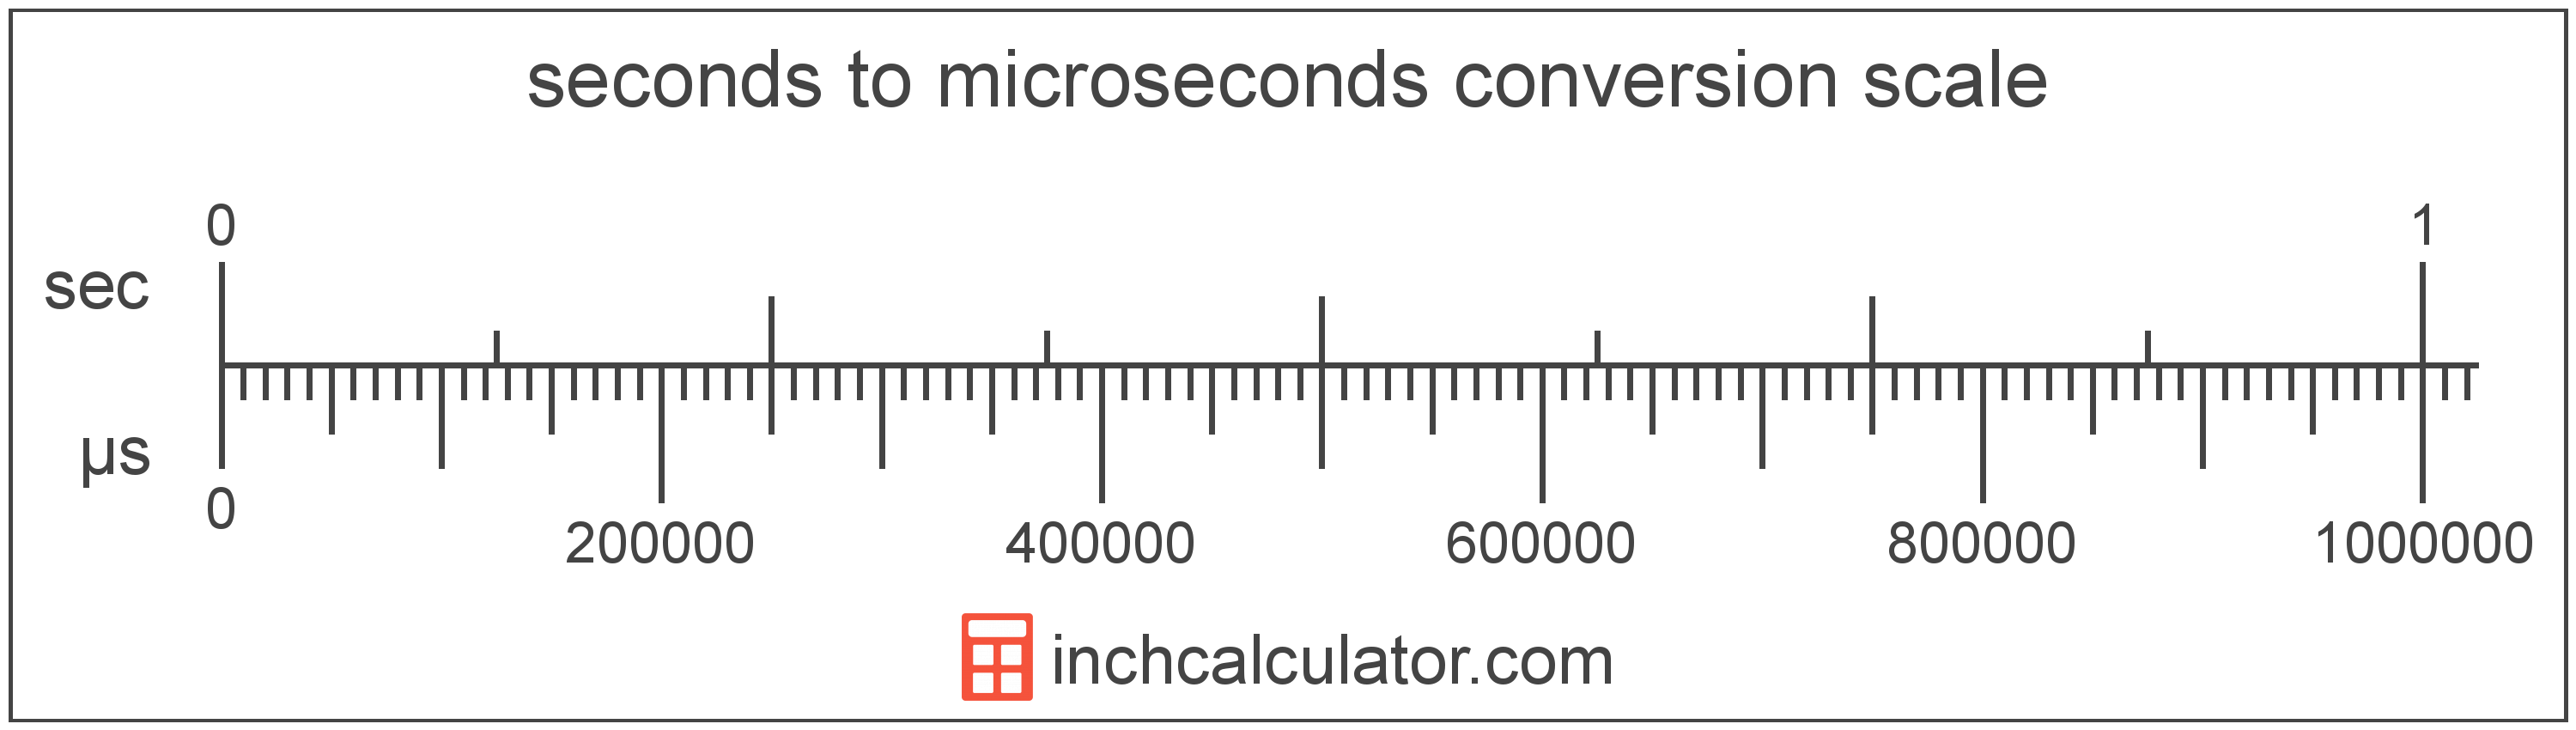 Microseconds to Seconds Conversion (µs to sec) - Inch Calculator